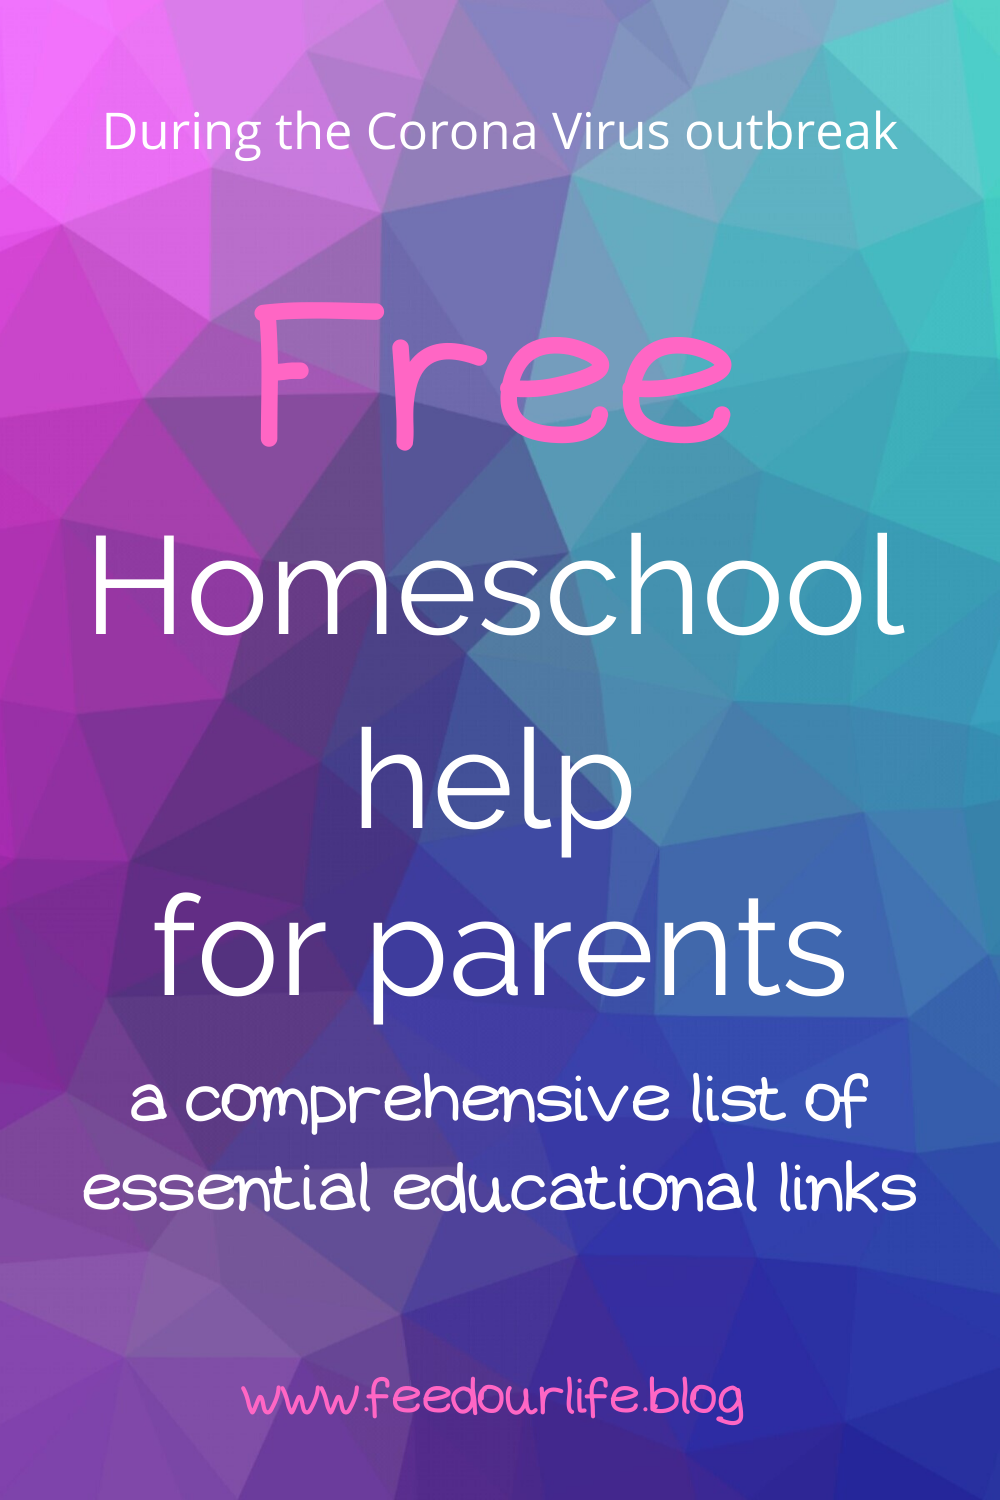 Free Homeschool Help For Parents Feedourlife Blog In 2020 Homeschool Help Free Homeschool Homeschool